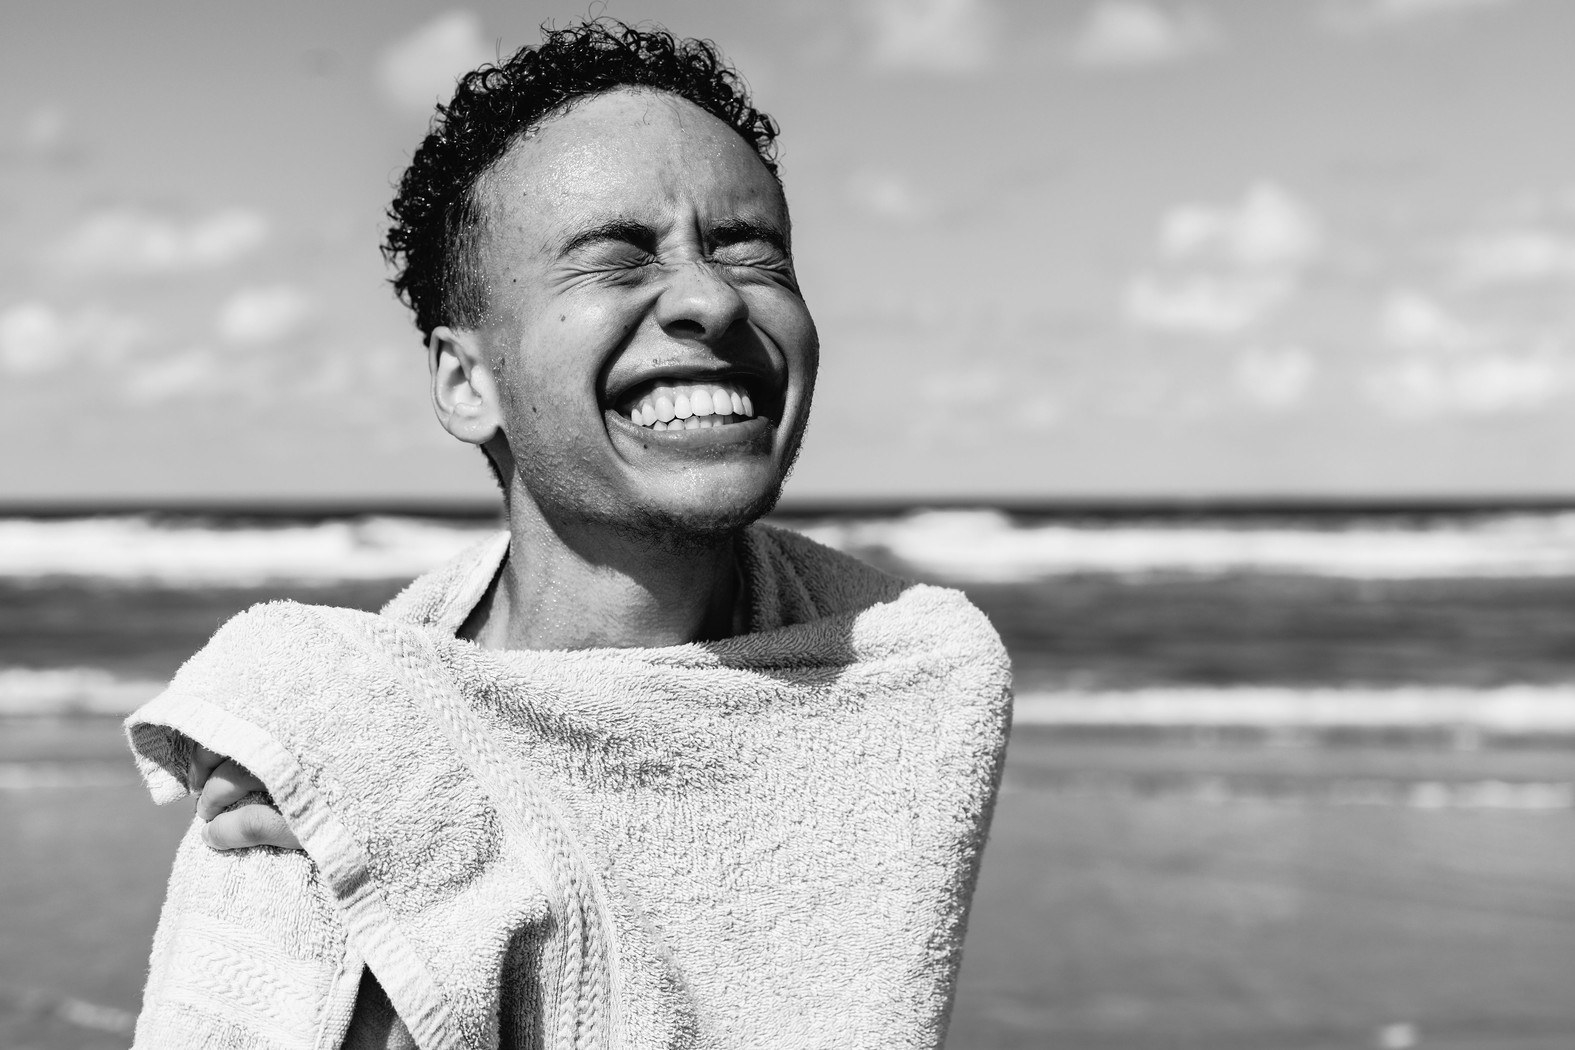 A young person smiles wide at the camera while wrapped in a towel, the ocean in the background